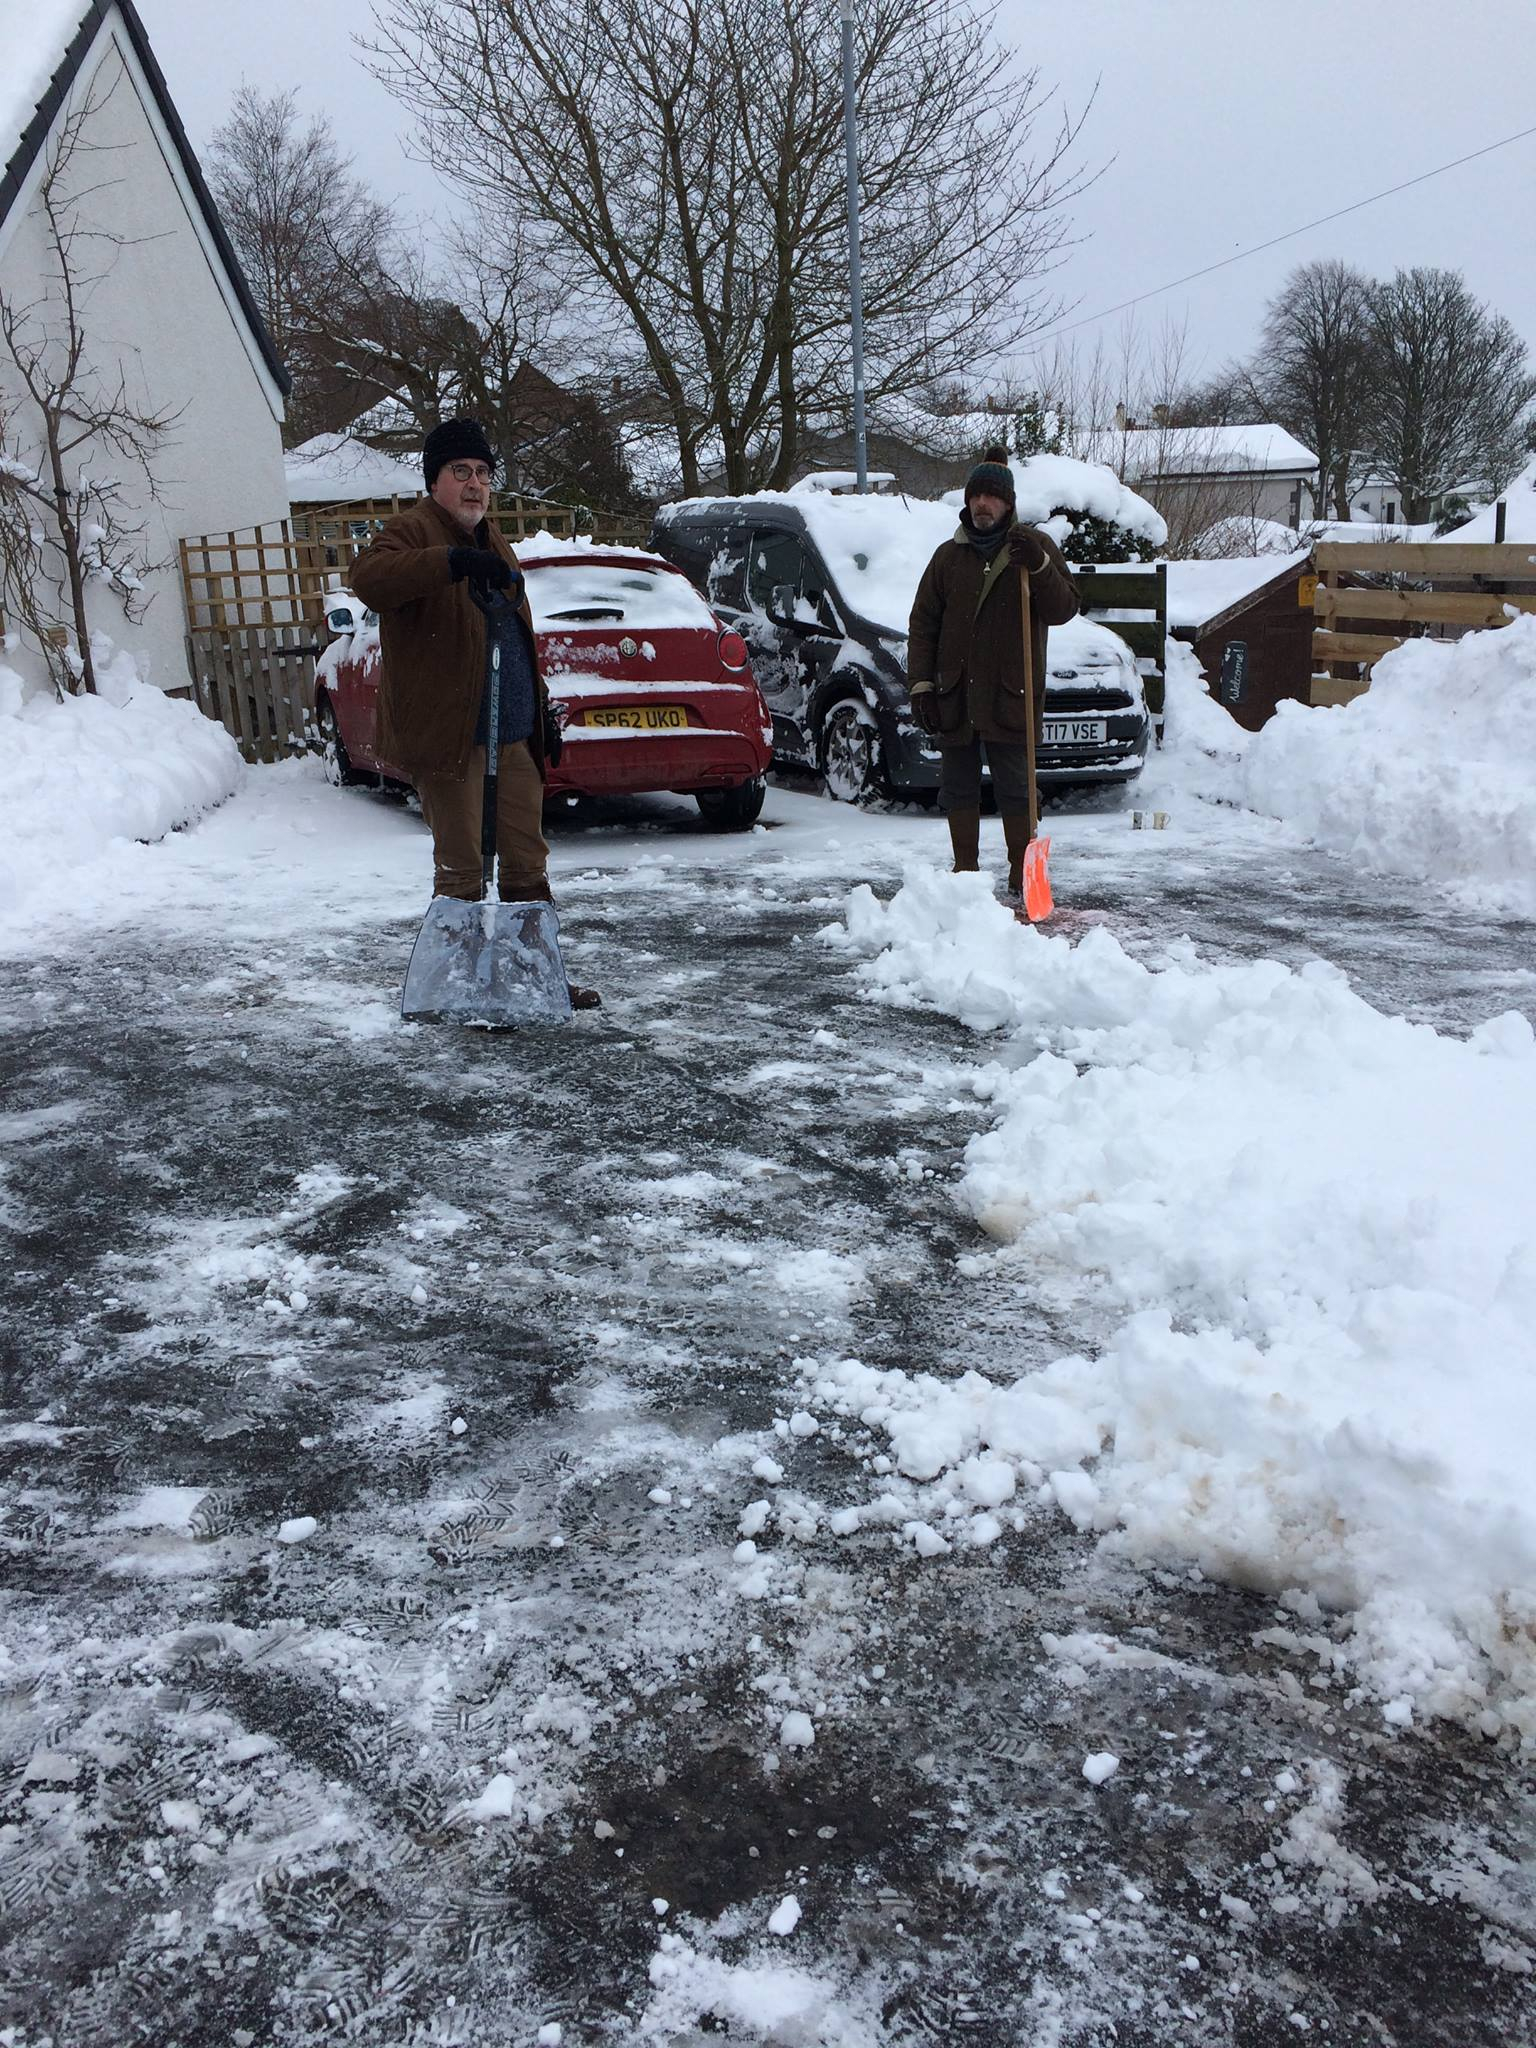 Residents in Bowden out clearing snow from paths and car parks. Photo: Andrea Beavon